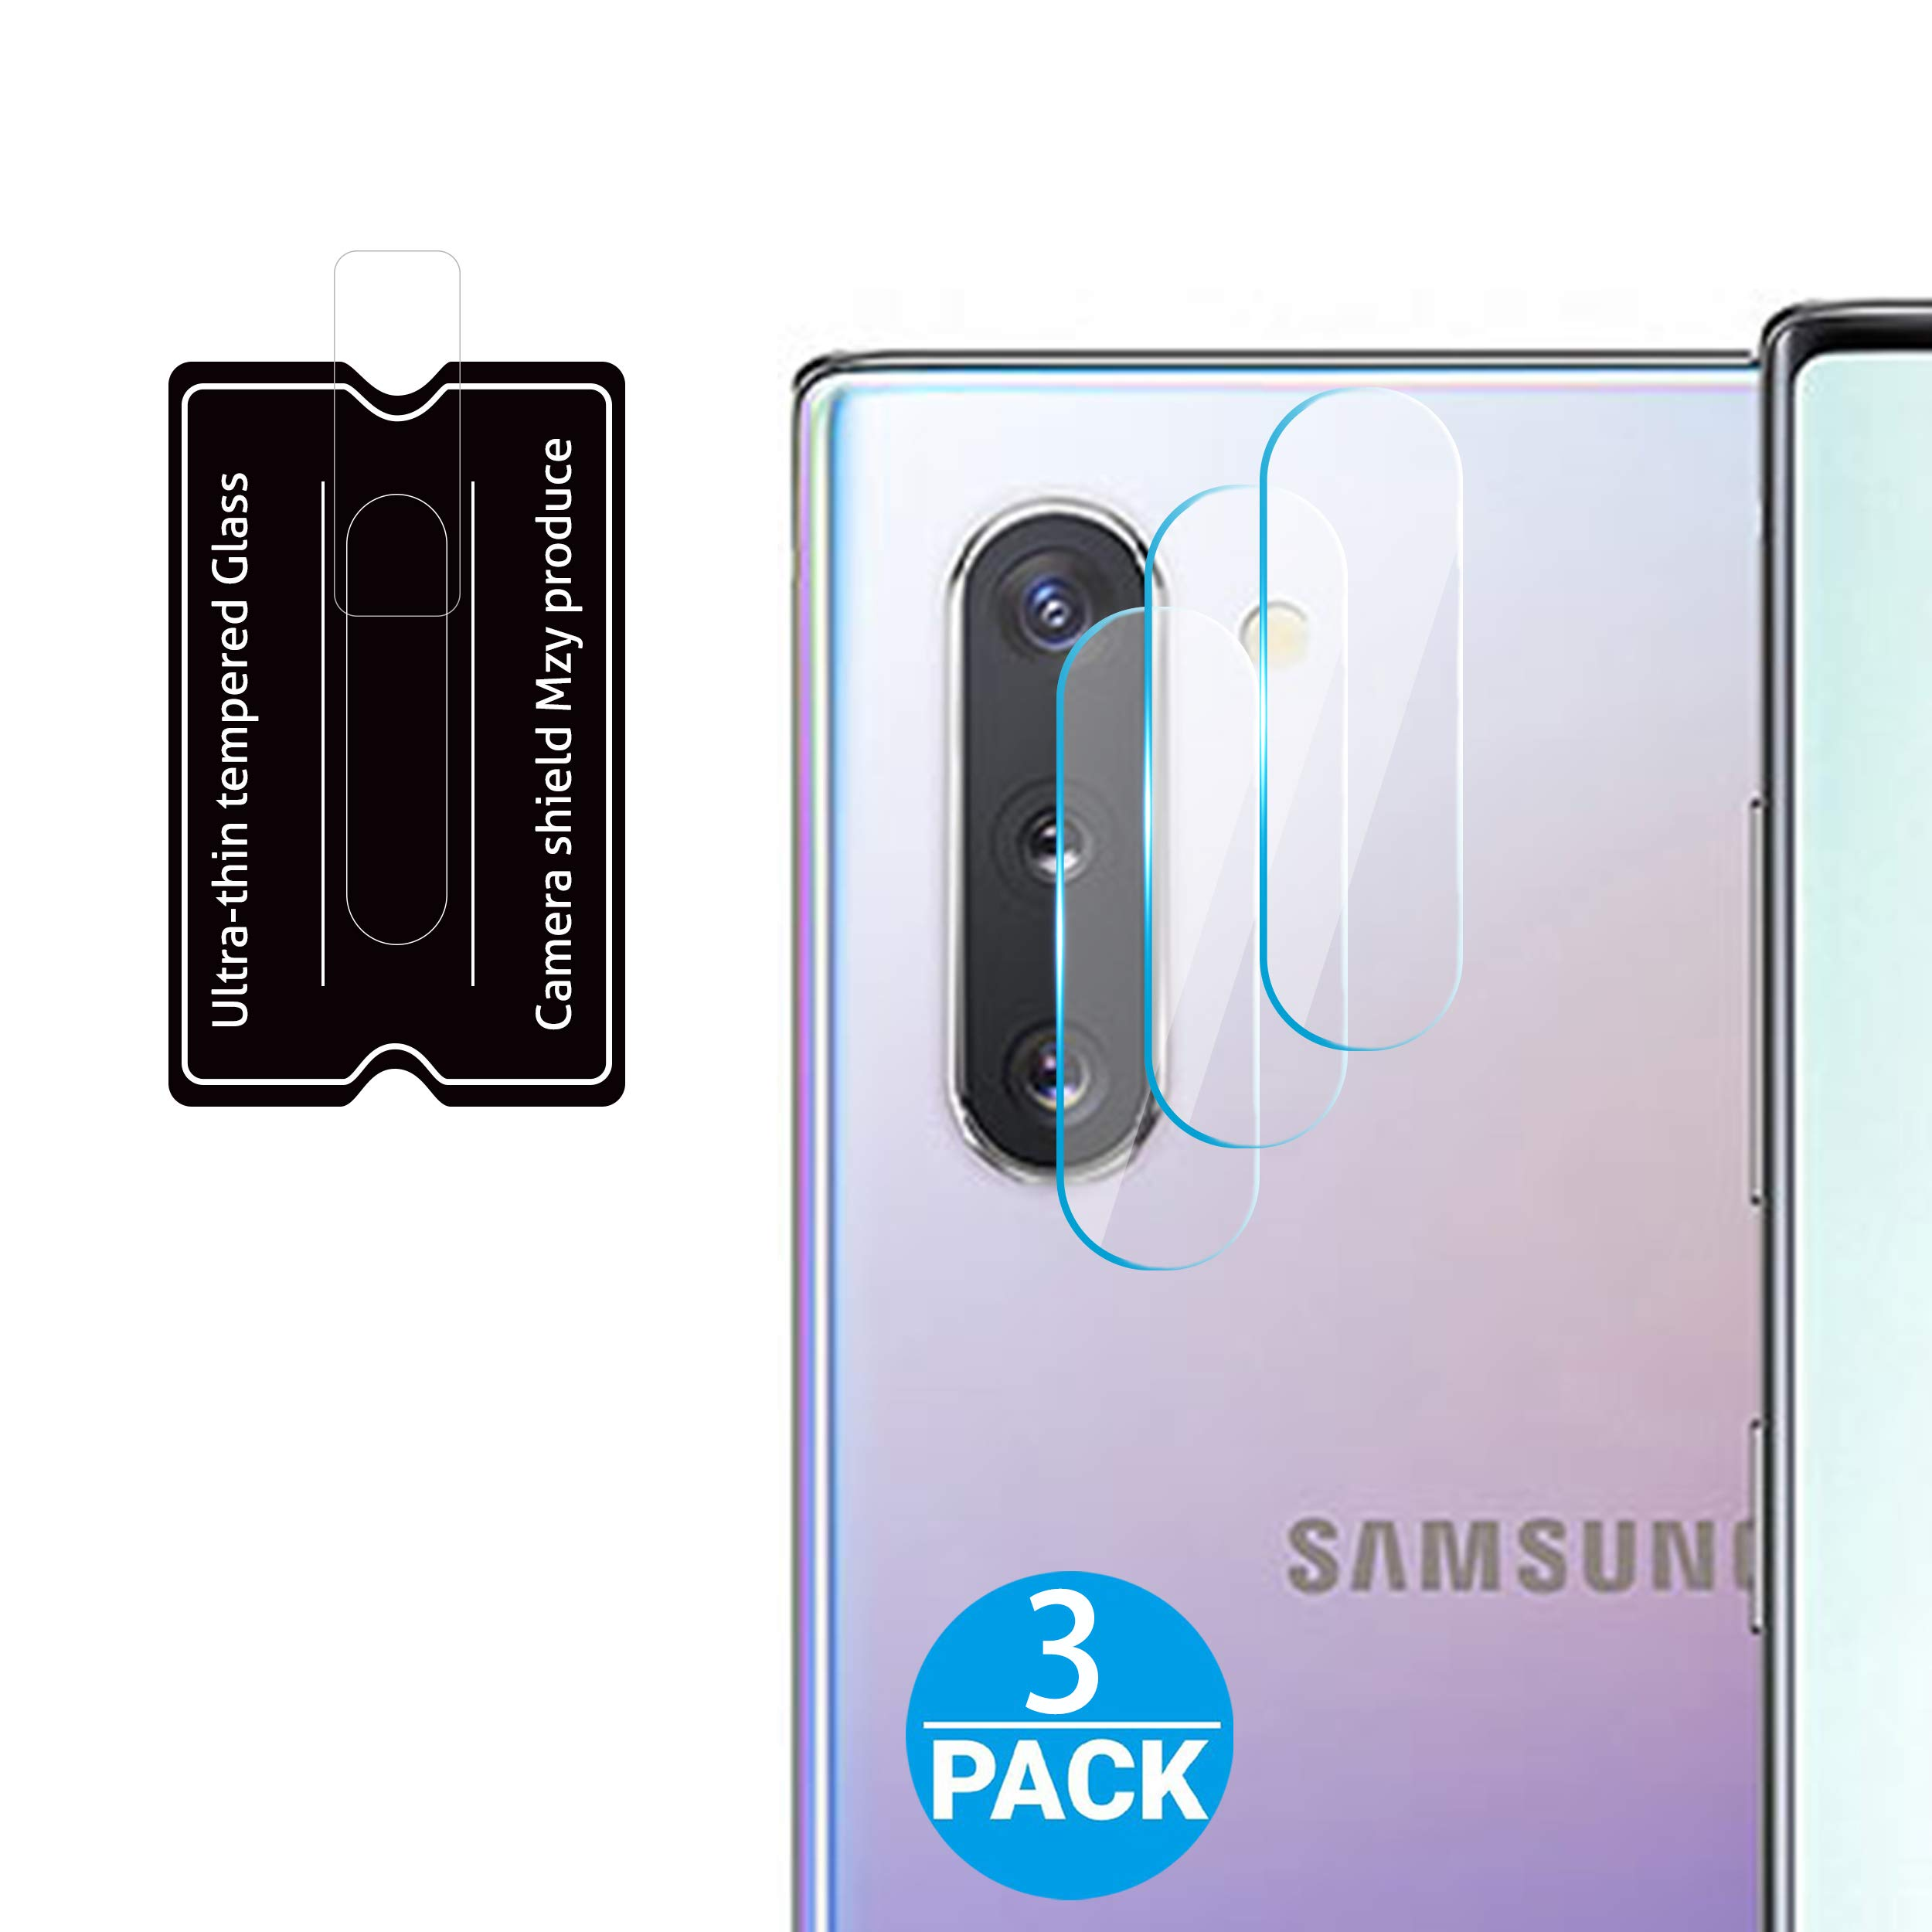 HOMEMO Screen Protector for Galaxy Note 10 / Note10 Plus Camera Lens 3 Pack Tempered Glass 2.5D Edge Advanced HD Clarity Work Most Case